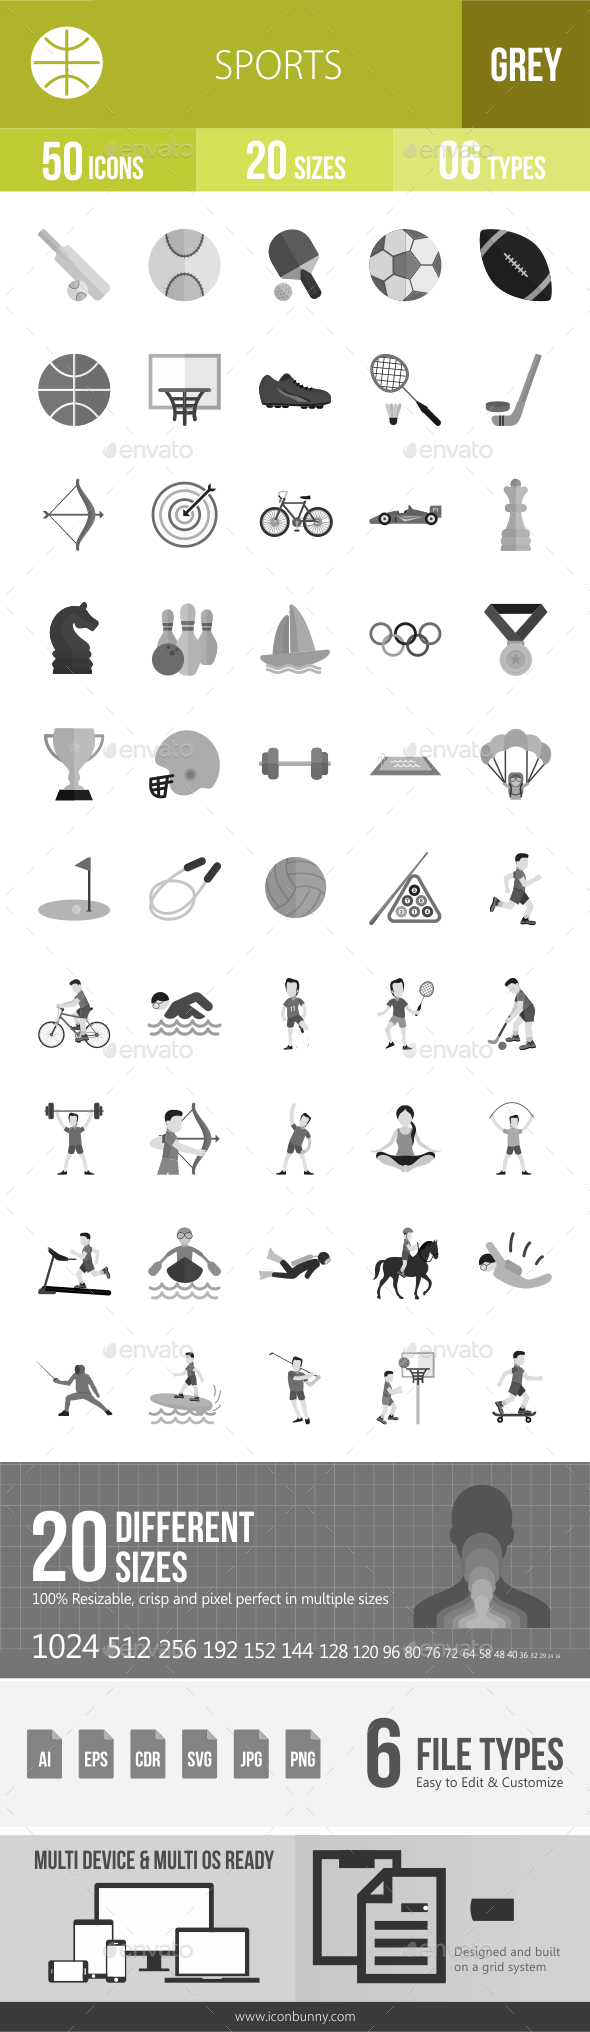 50 Sports Grey Scale Icons - Icons